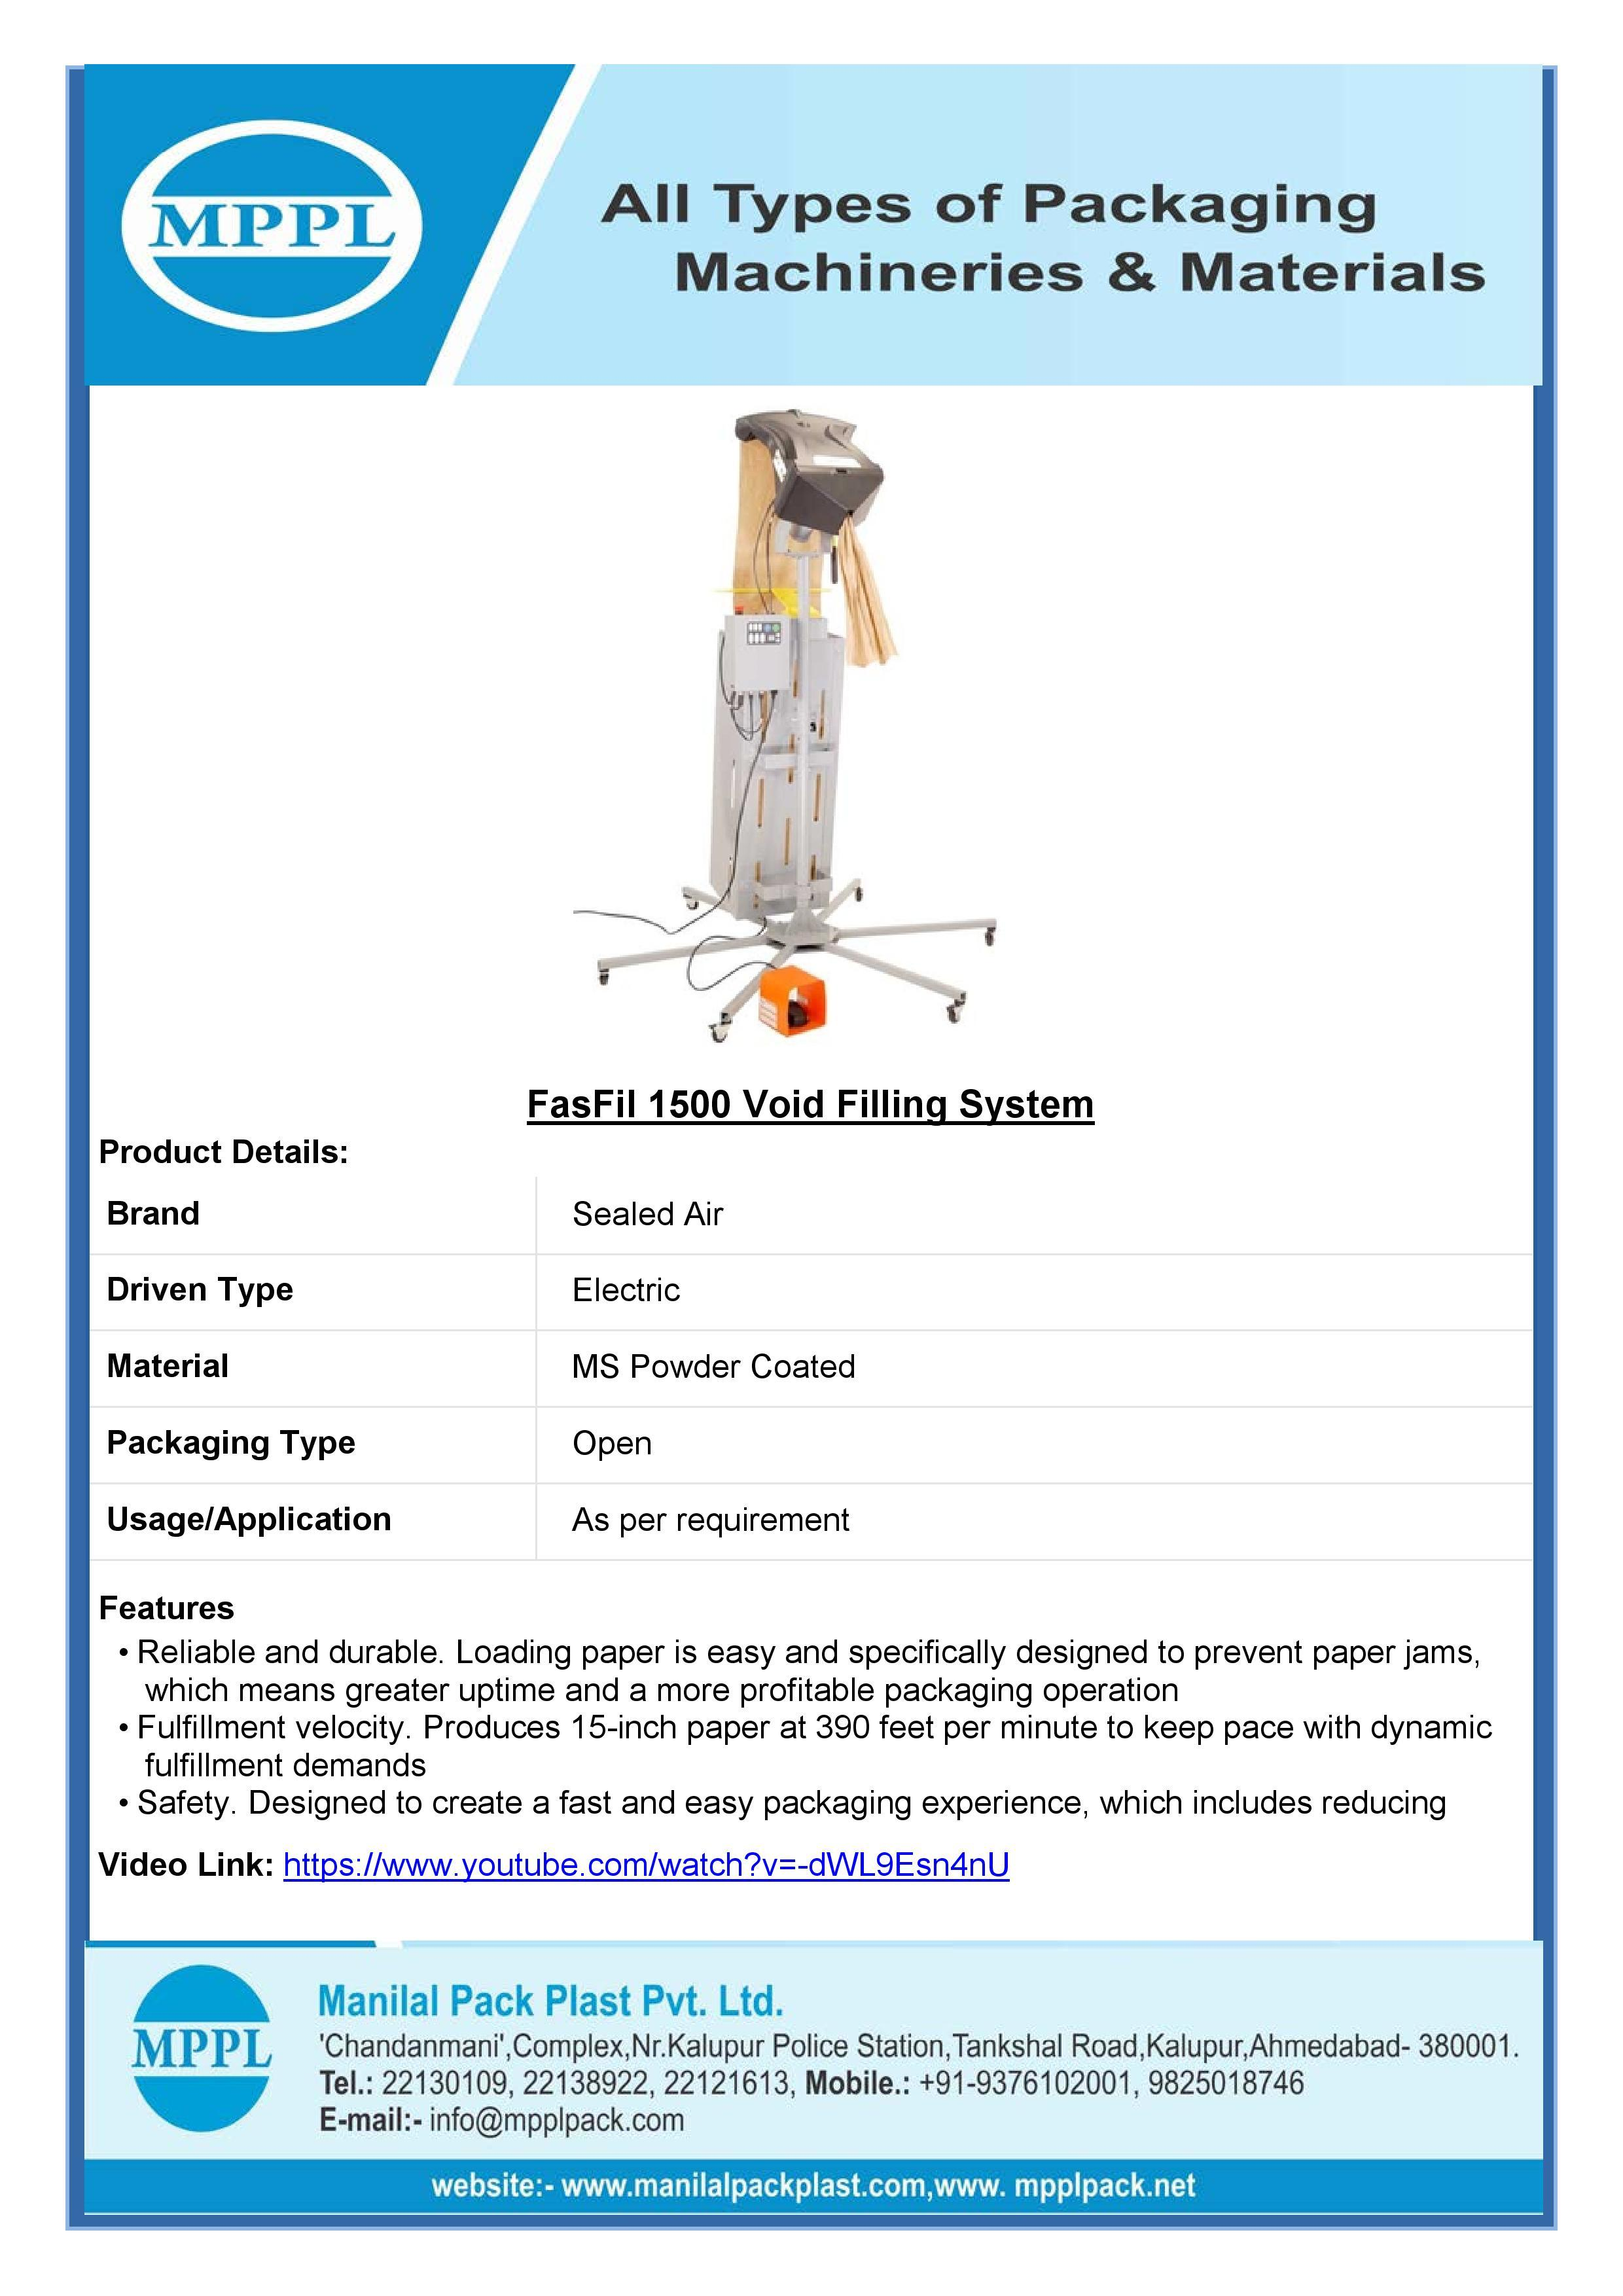 FasFil Jet Paper Void Fill Machine